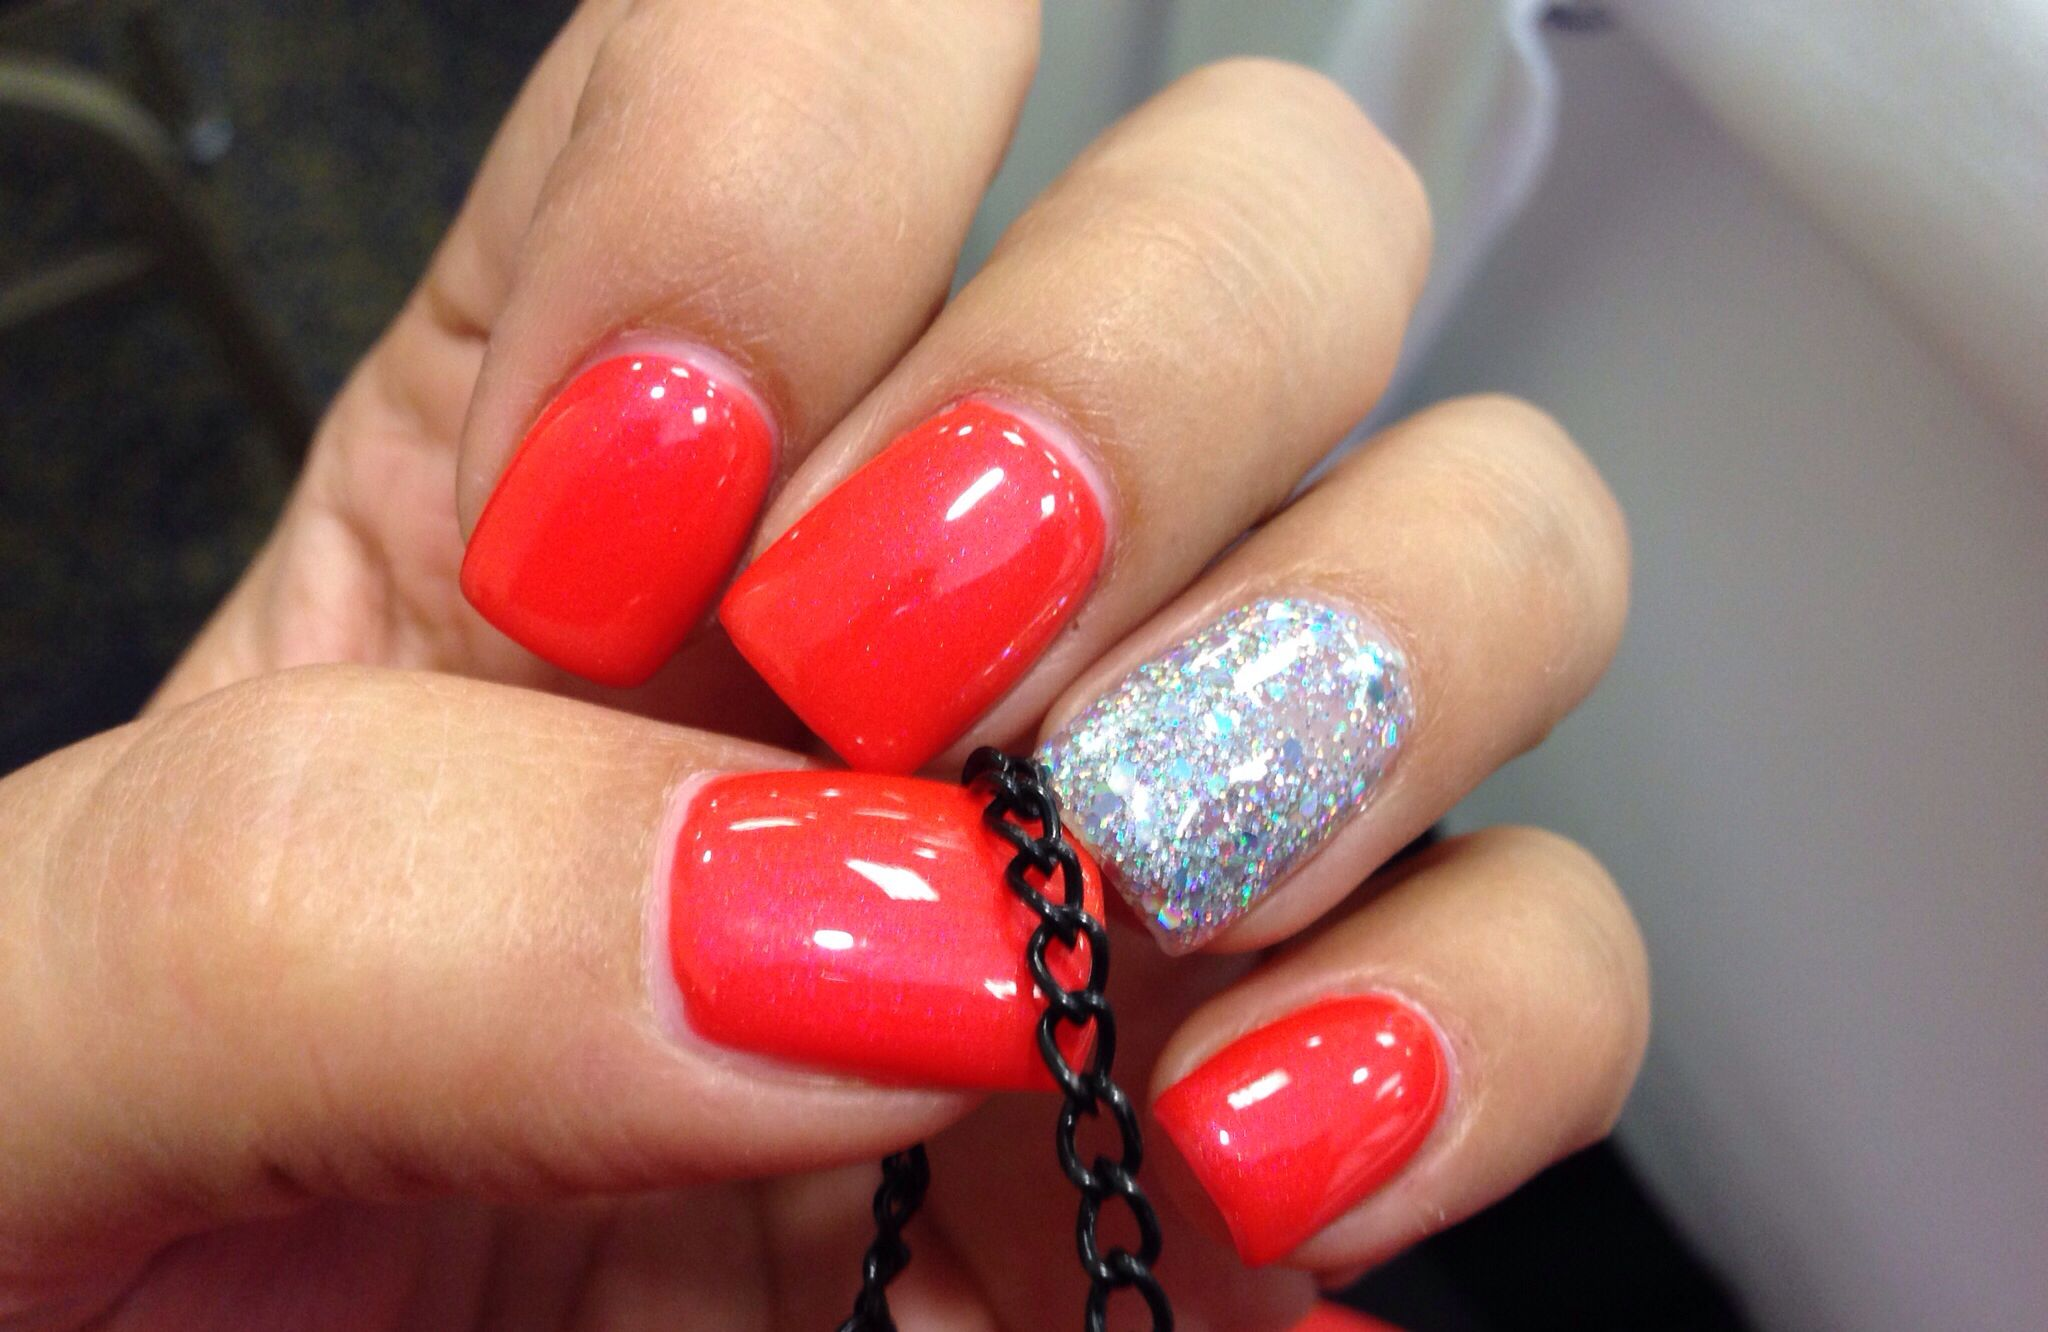 Bright orange nails with glitter gel   Nail Files   Pinterest ...